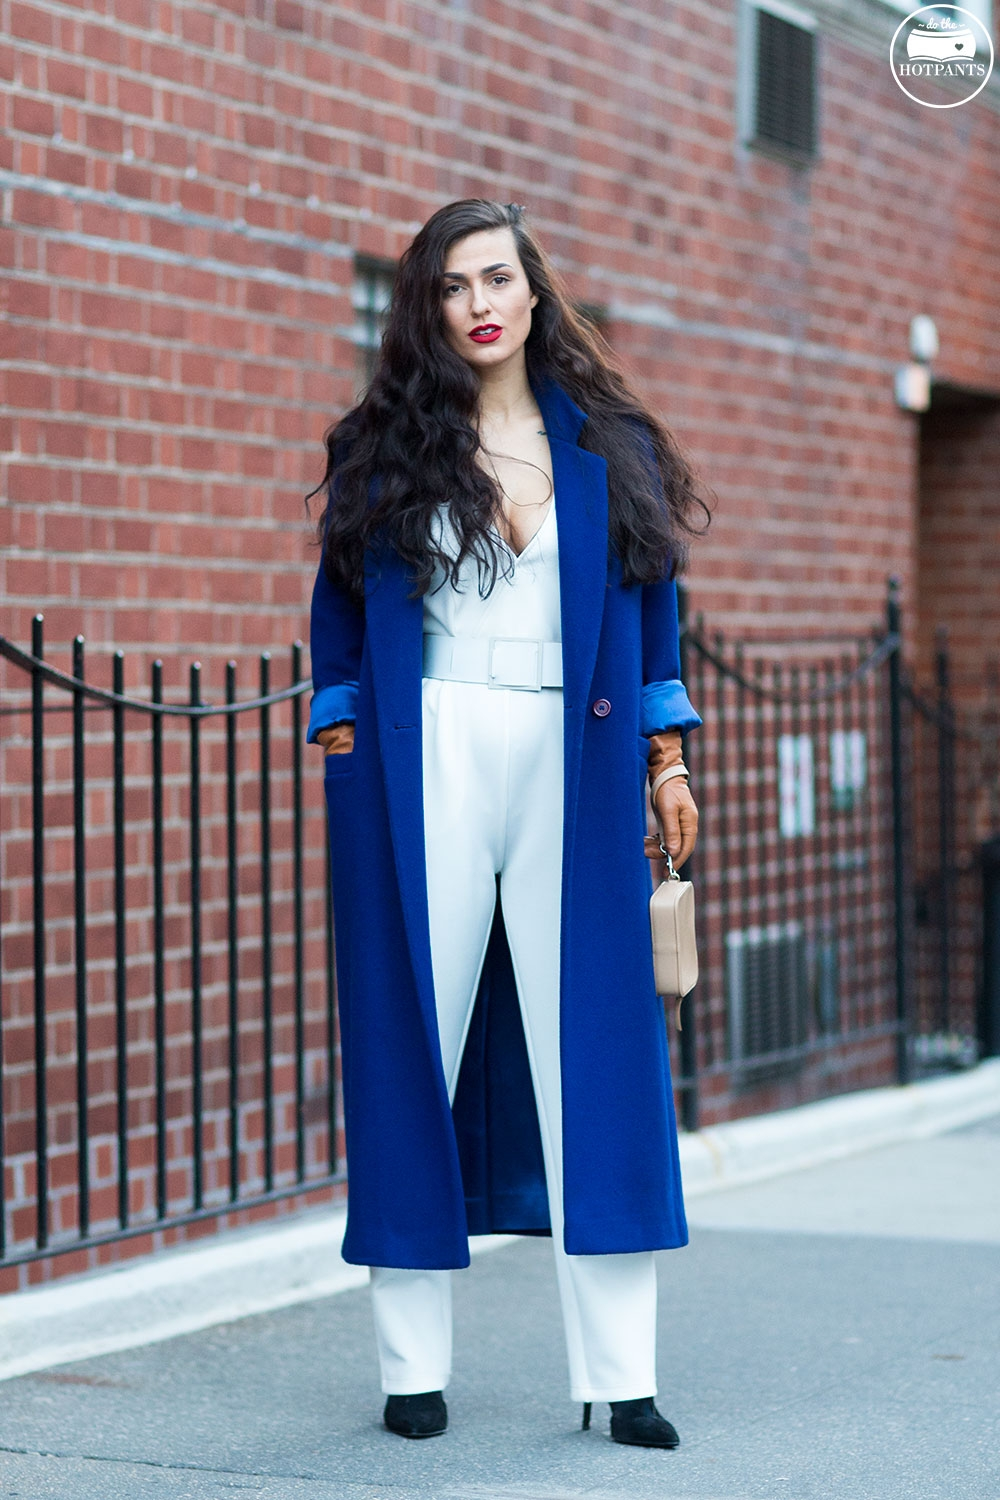 Do The Hotpants Dana Suchow White Jumpsuit Navu Blue Peacoat Trench Coat Jacket Red Lipstick Long Hair Woman MJJ_0047